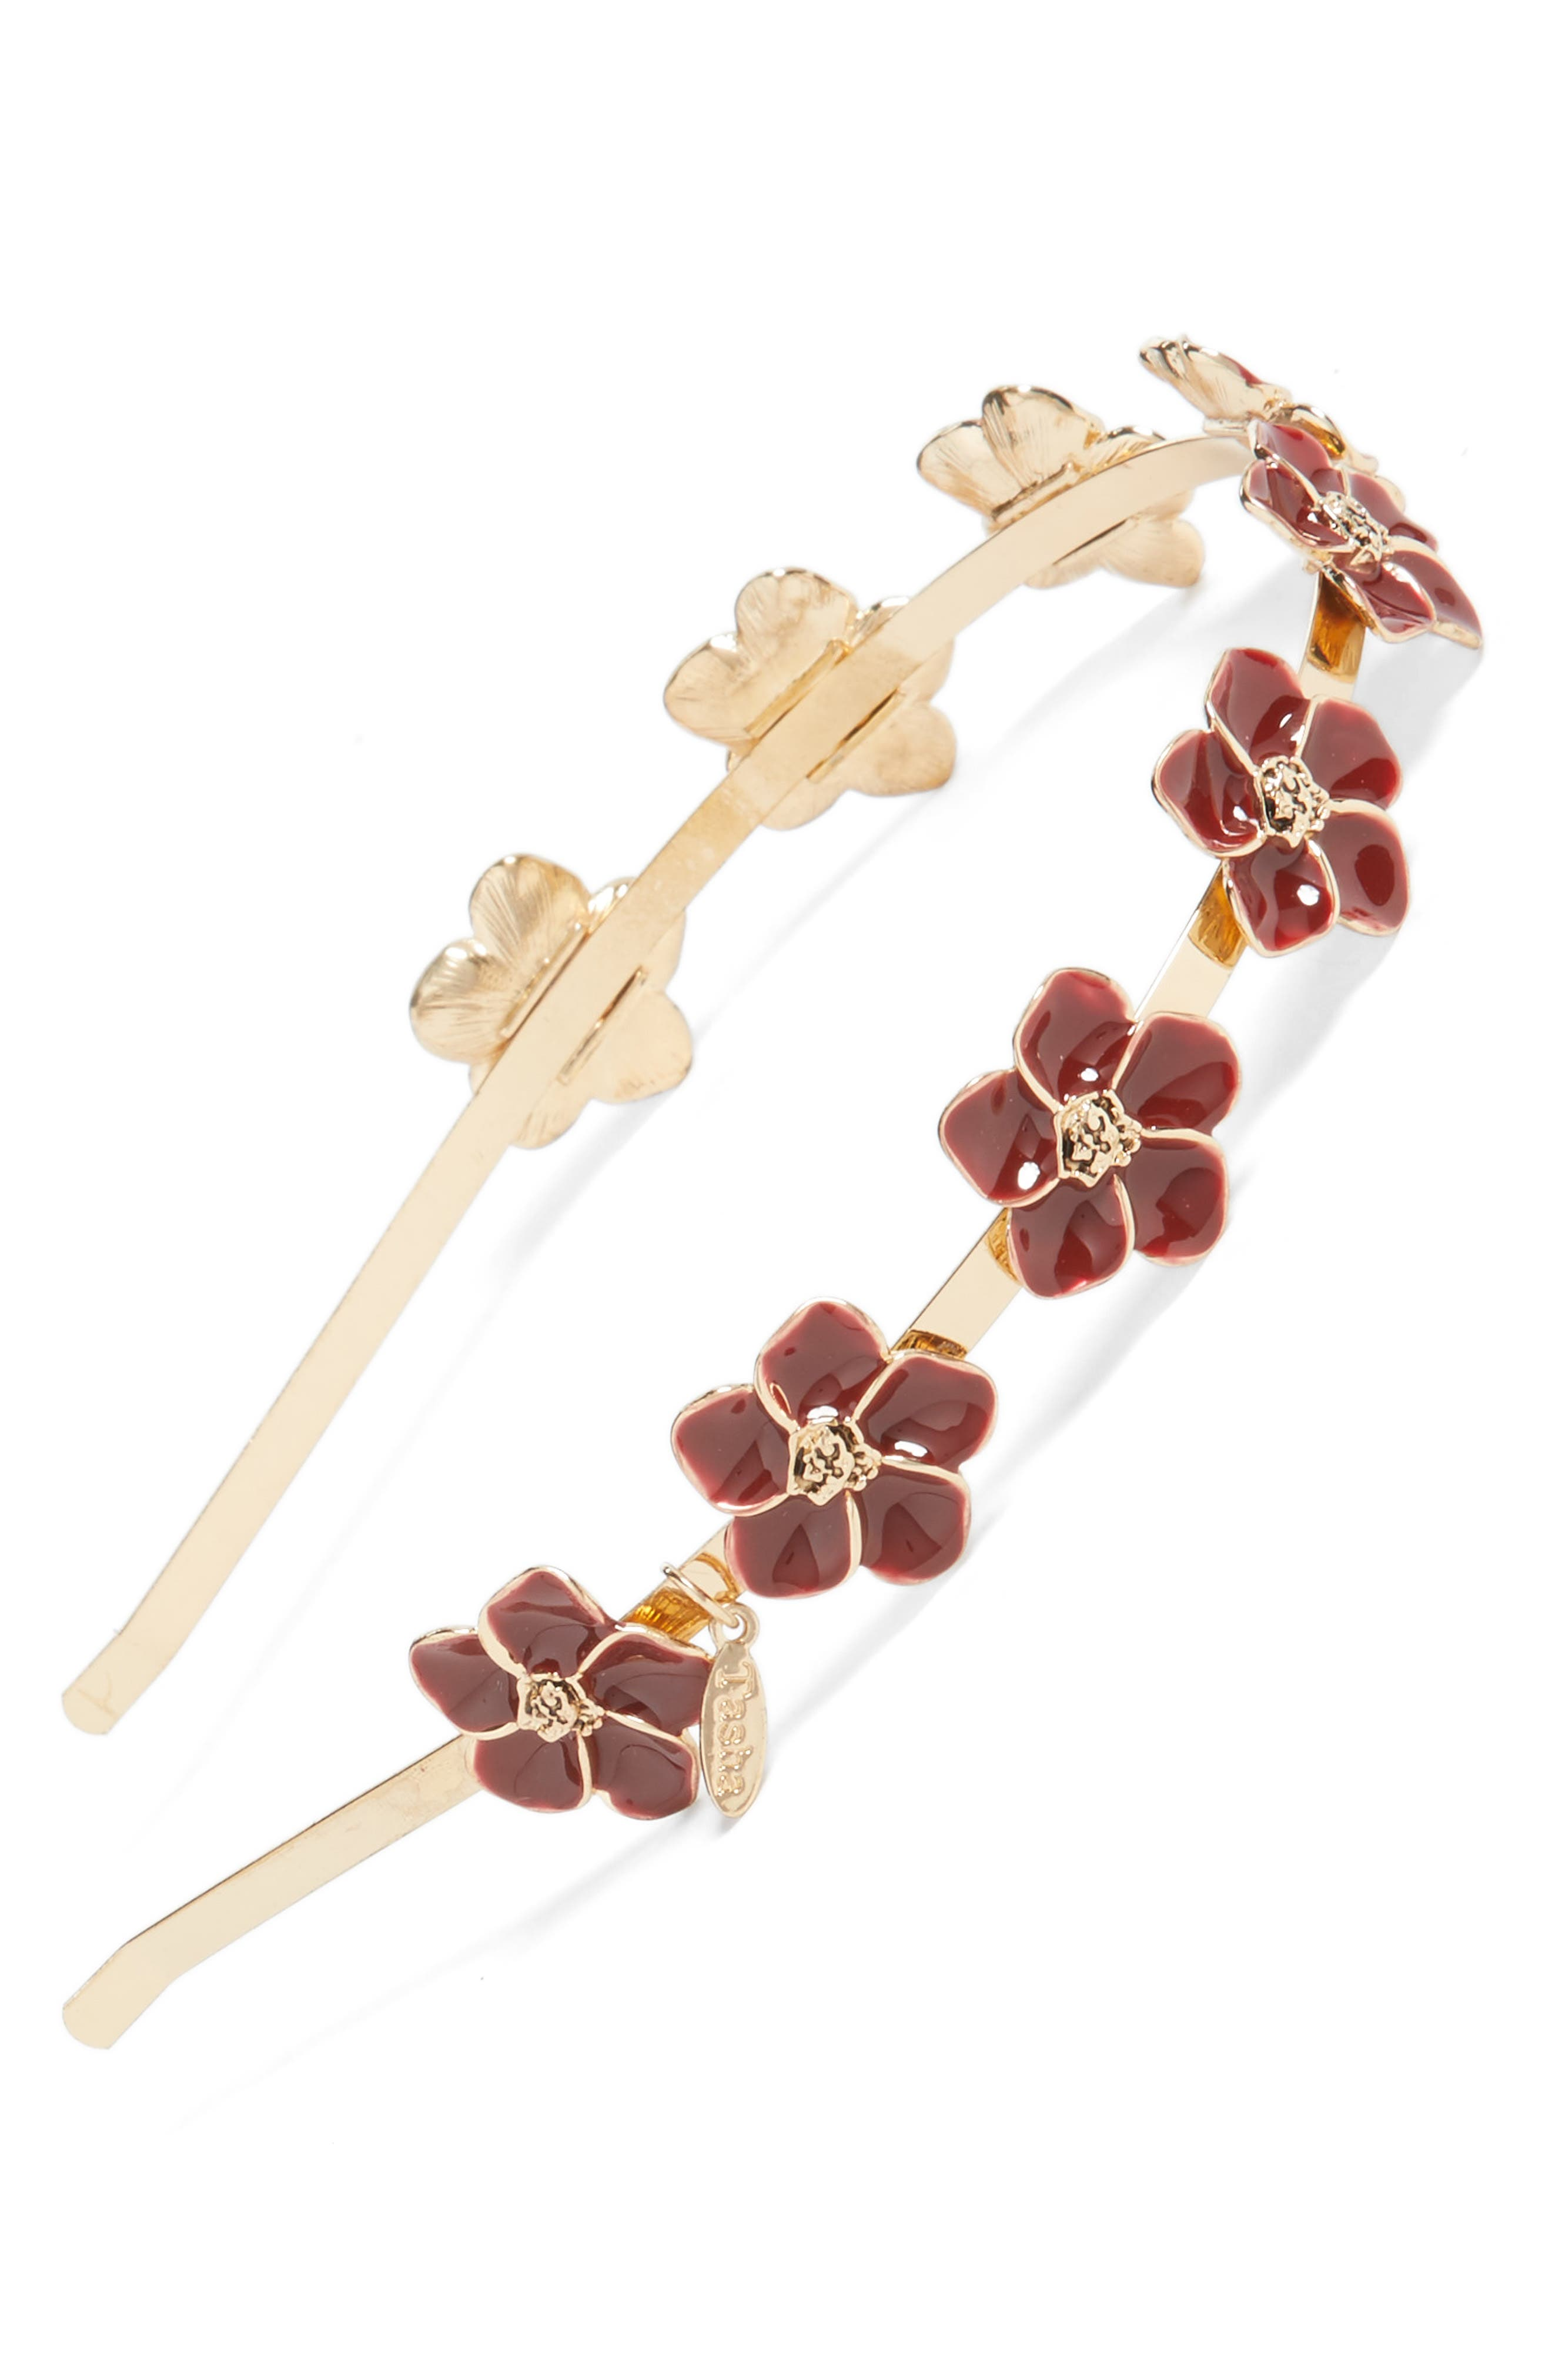 Enamel Floral Headband,                             Main thumbnail 1, color,                             Gold/ Red